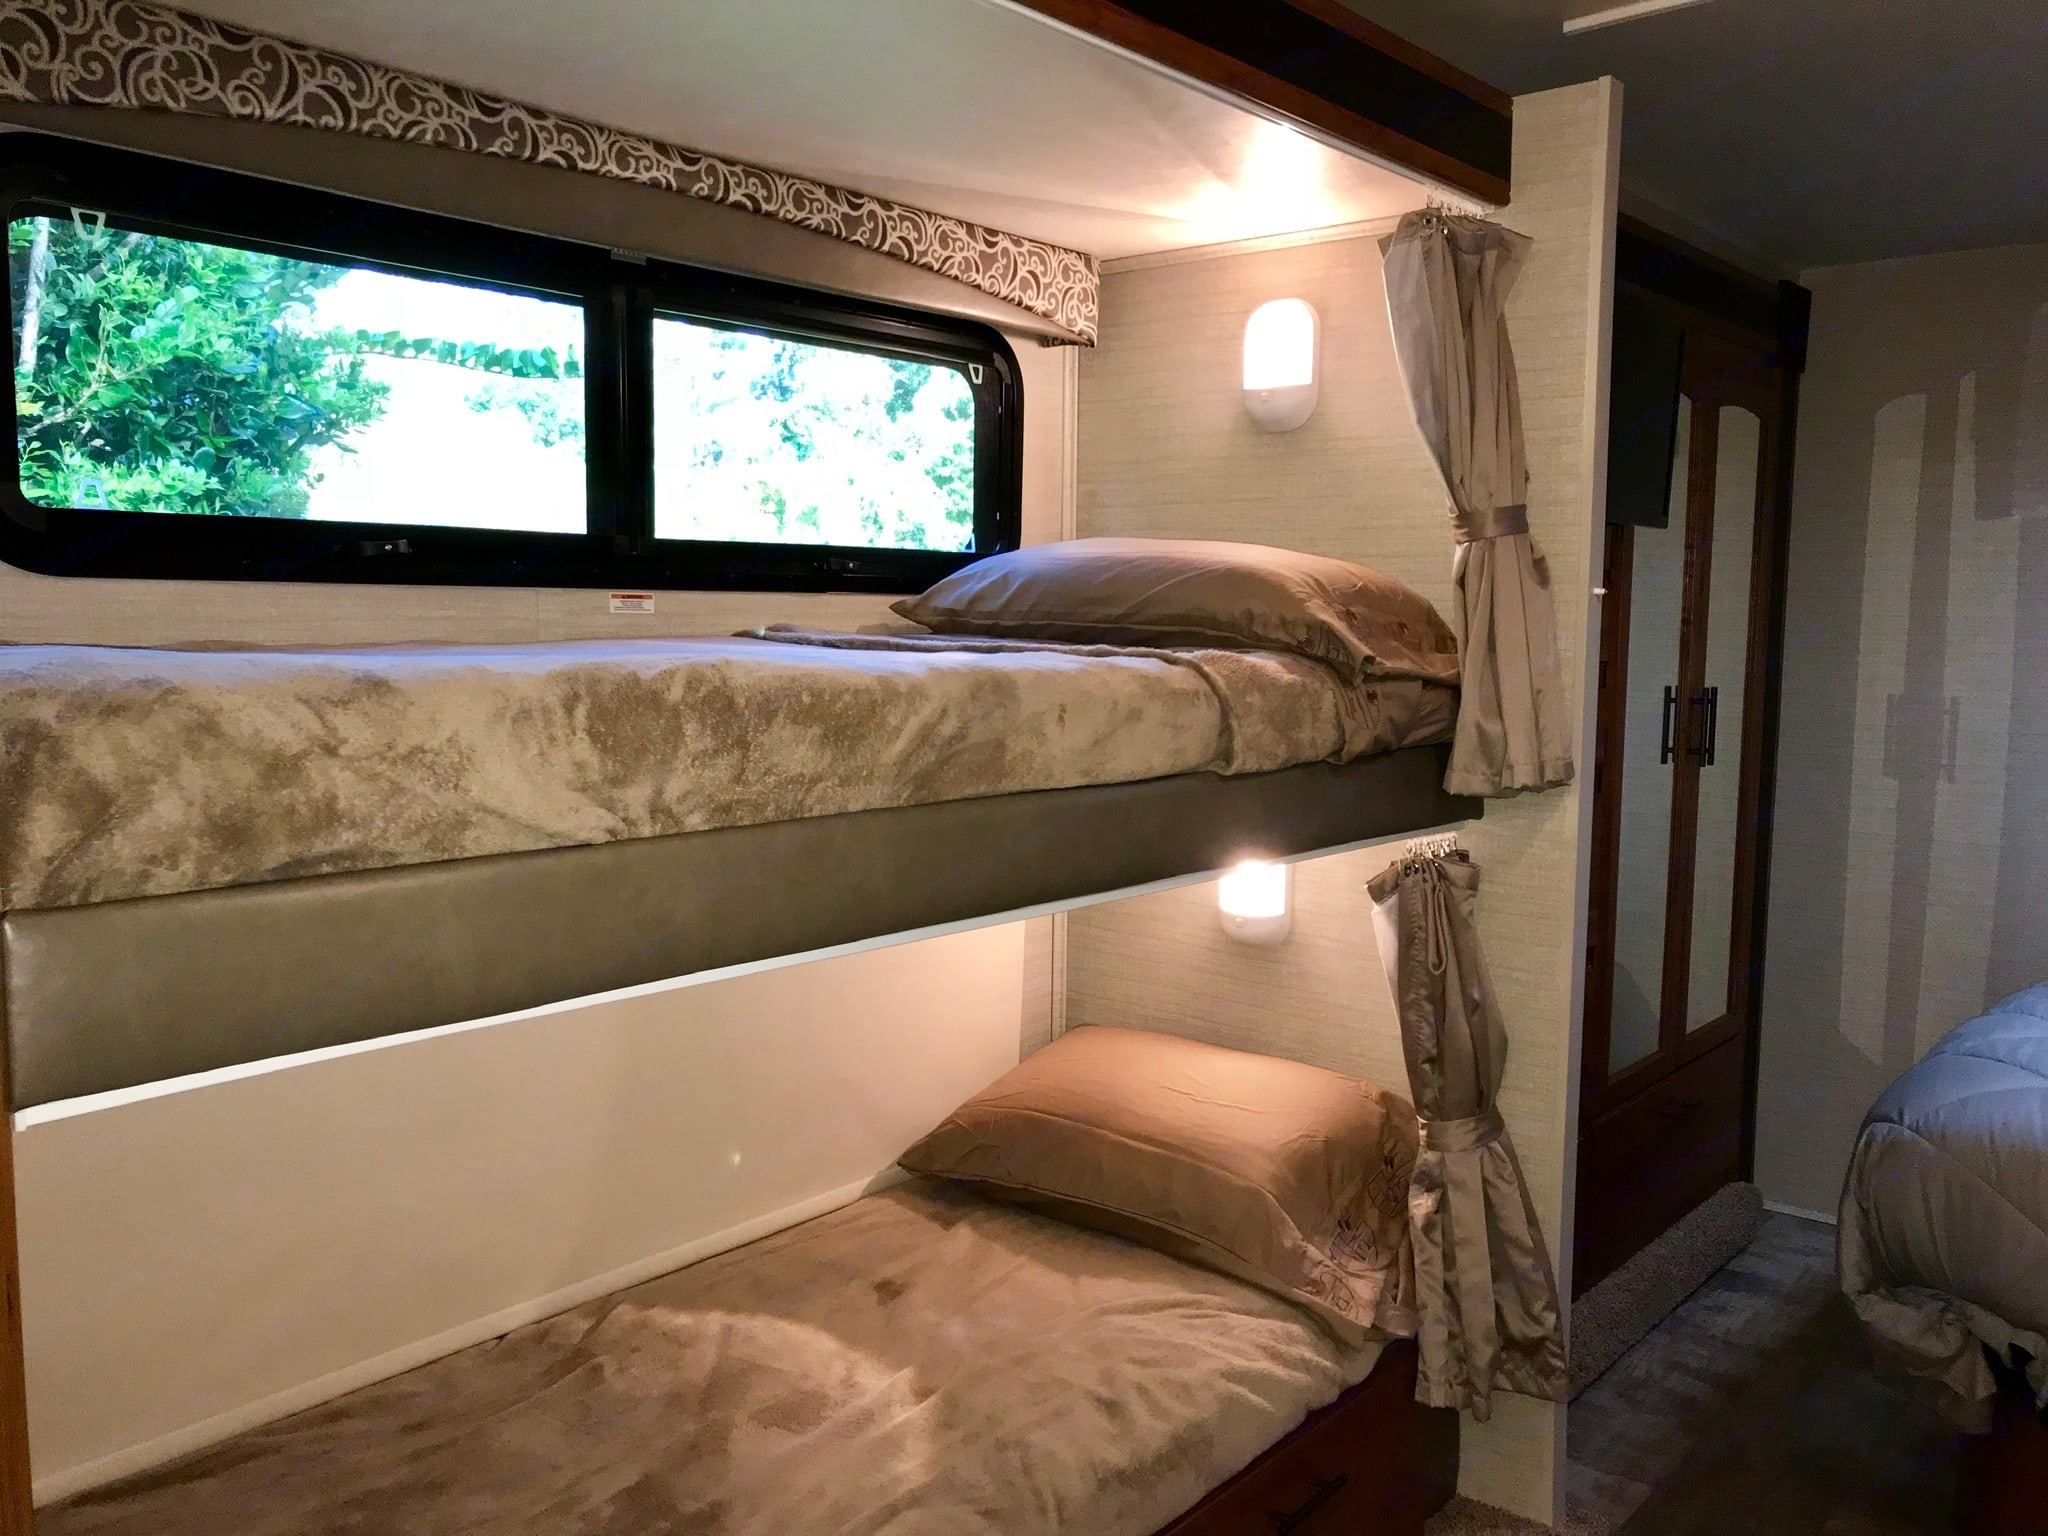 Large bunk beds, each with their own window, window shades and privacy curtains. Jayco Redhawk 2017